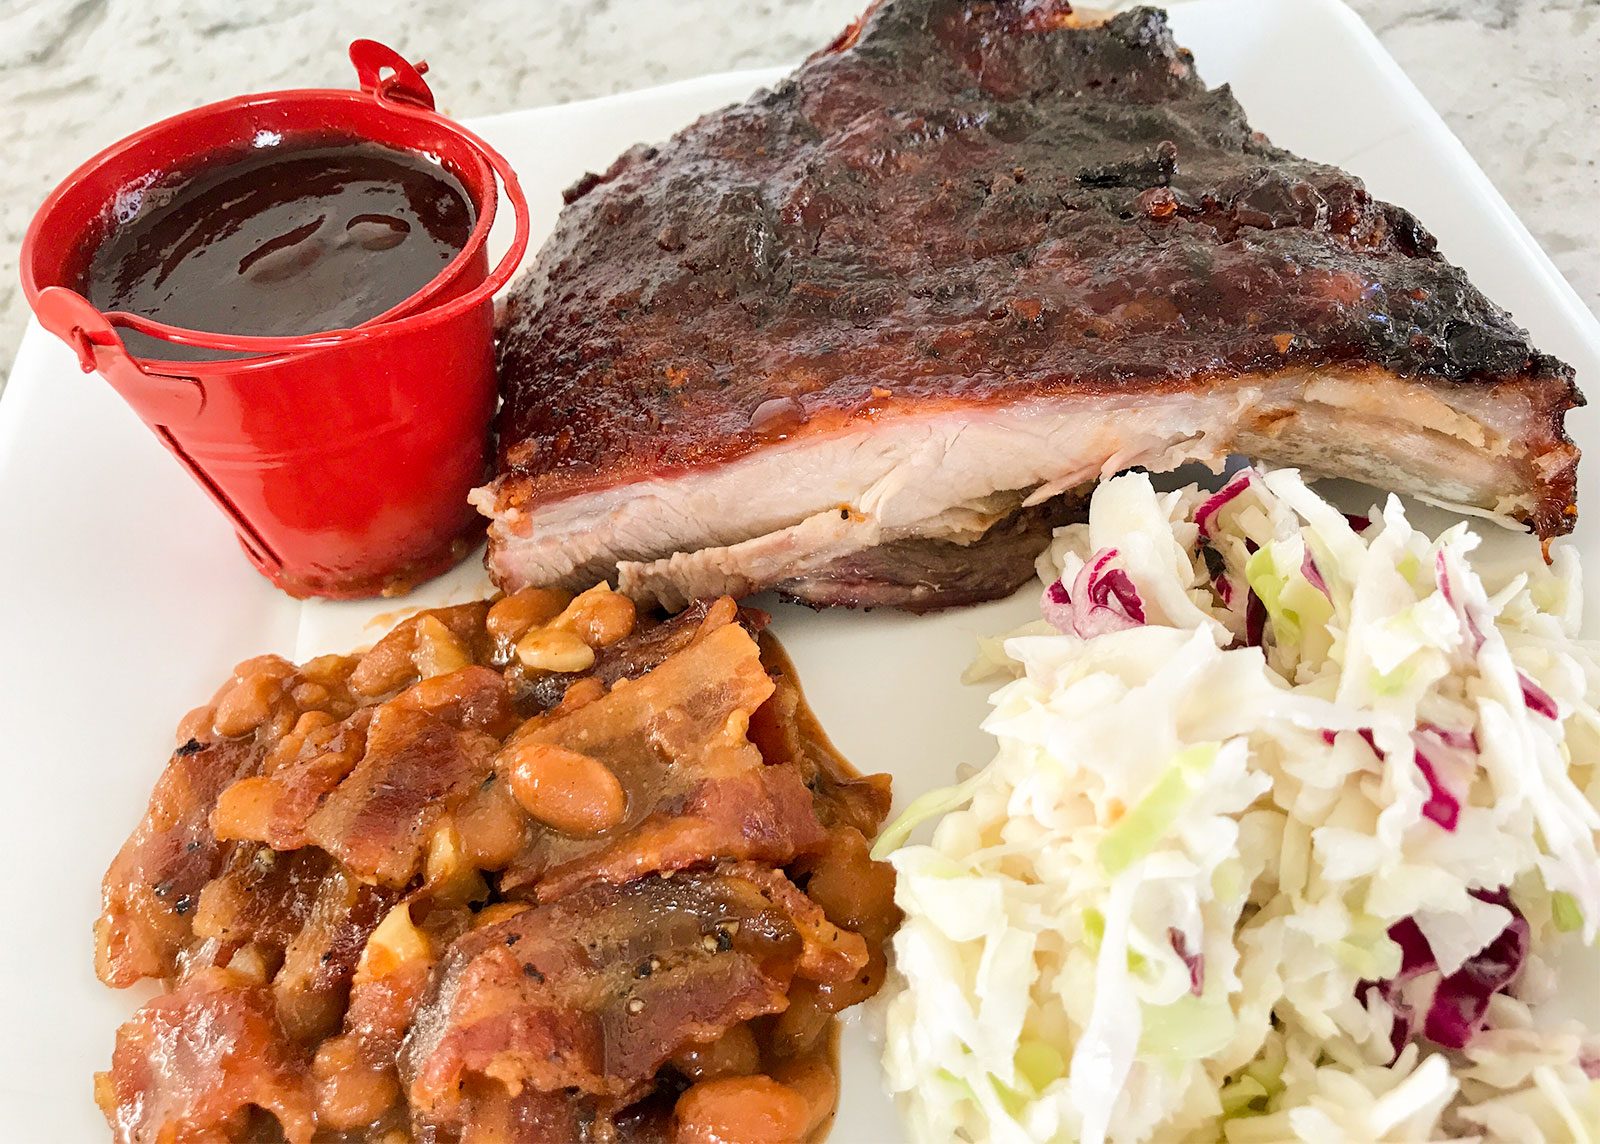 A plate of barbecued food